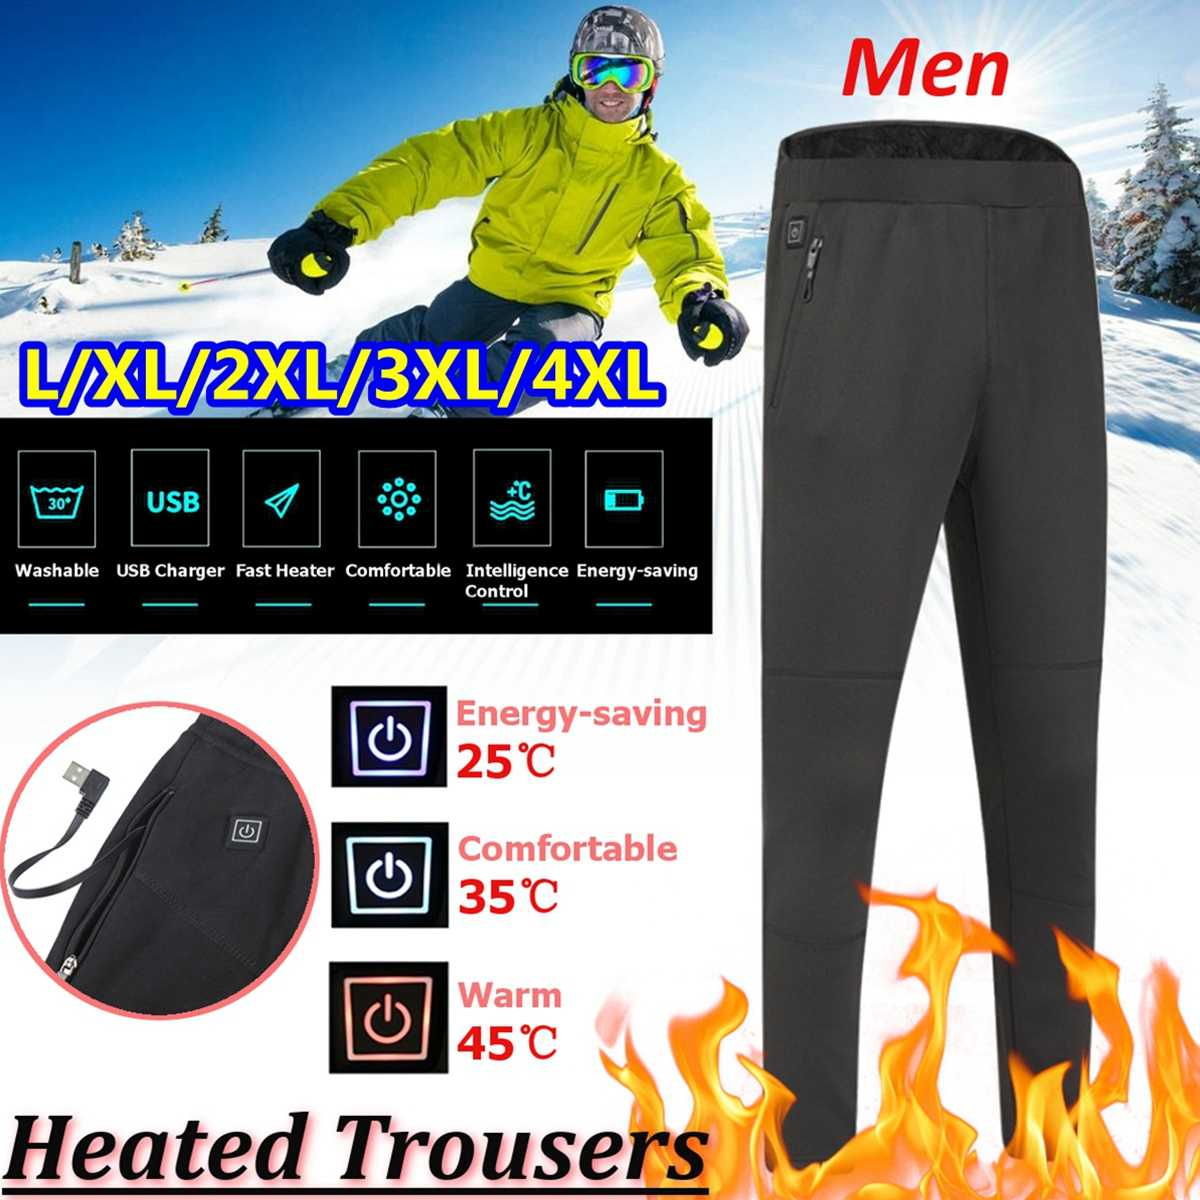 Men Winter Outdoor Hiking Heating Fever Trousers Usb Charging High Waist Leggings Trousers Slim Thickened  Heated PantsMen Winter Outdoor Hiking Heating Fever Trousers Usb Charging High Waist Leggings Trousers Slim Thickened  Heated Pants